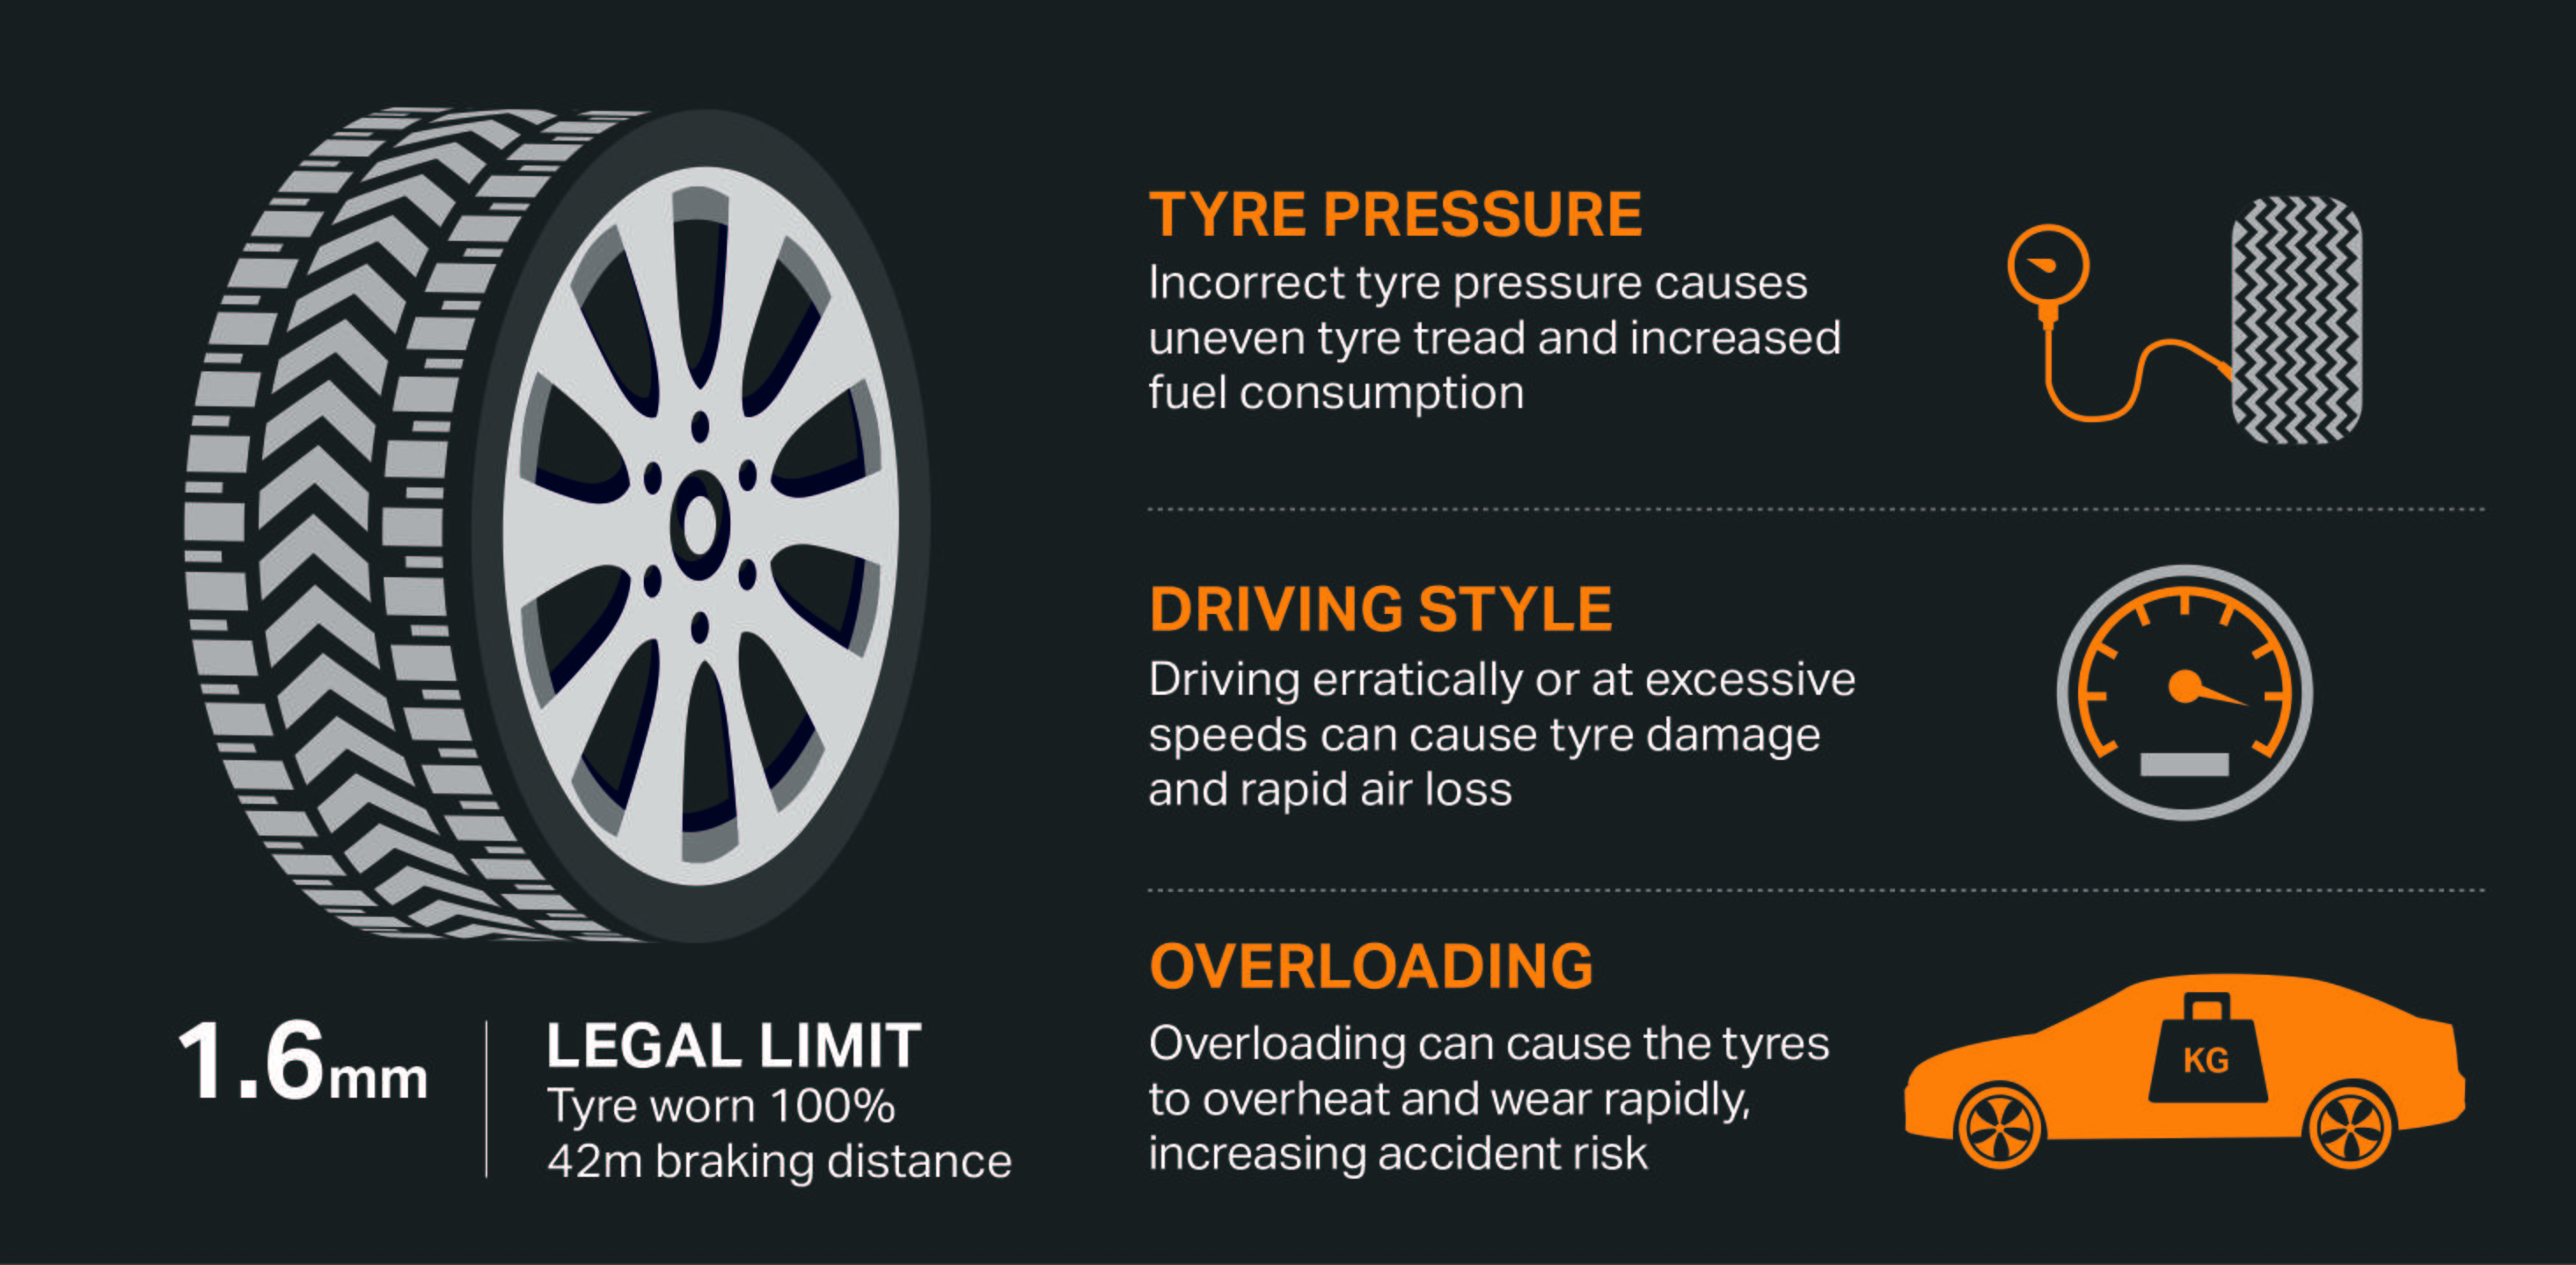 Tyre wear also tread depth and safety advice halfords autocentres rh halfordsautocentres